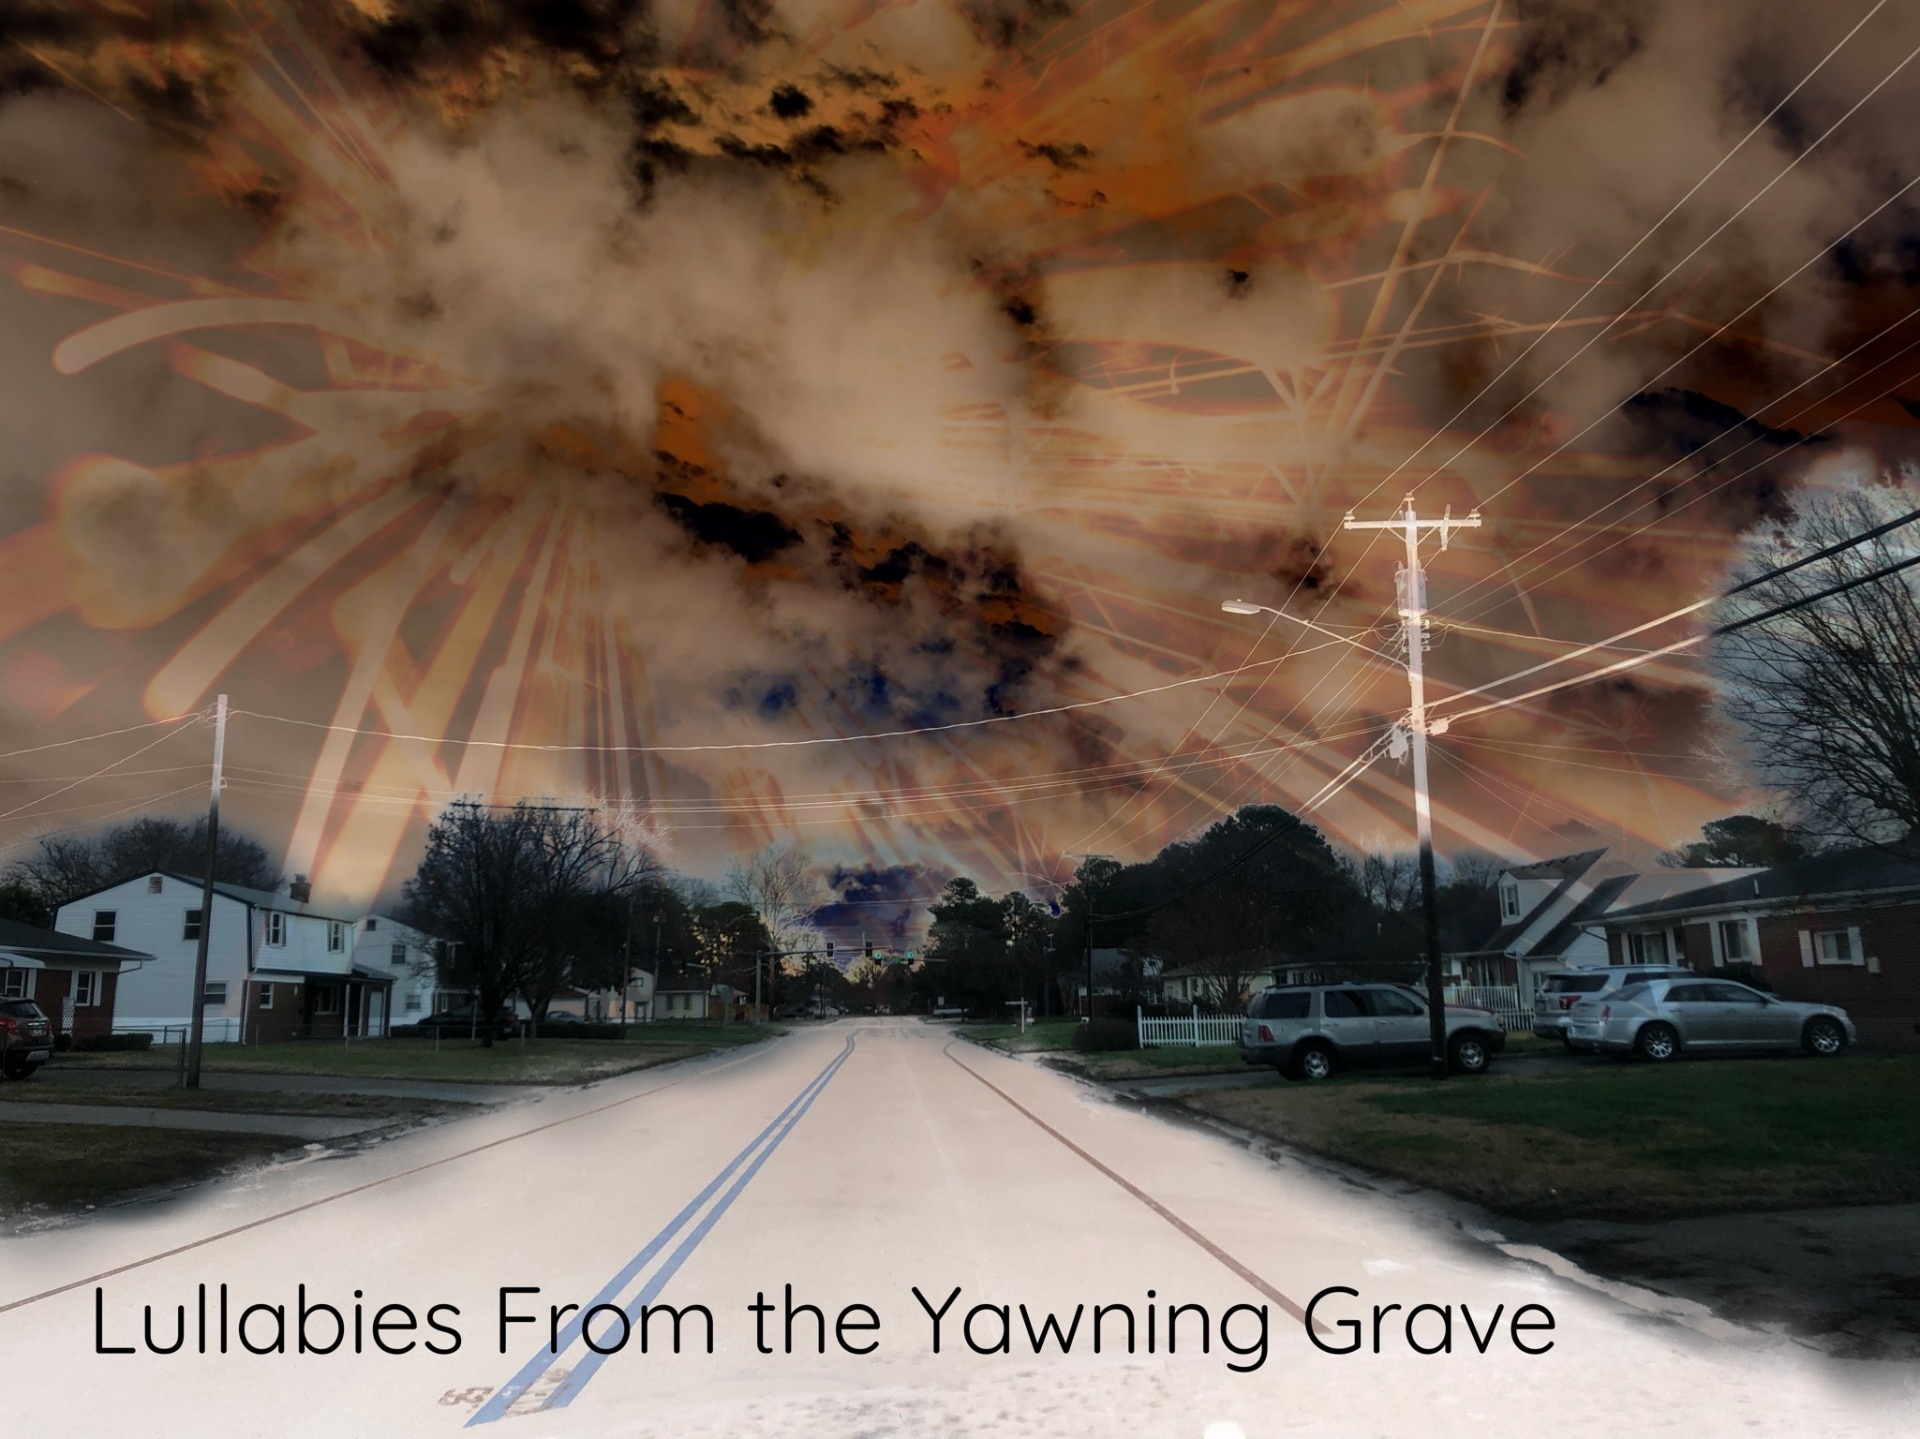 Lullabies From the Yawning Graves